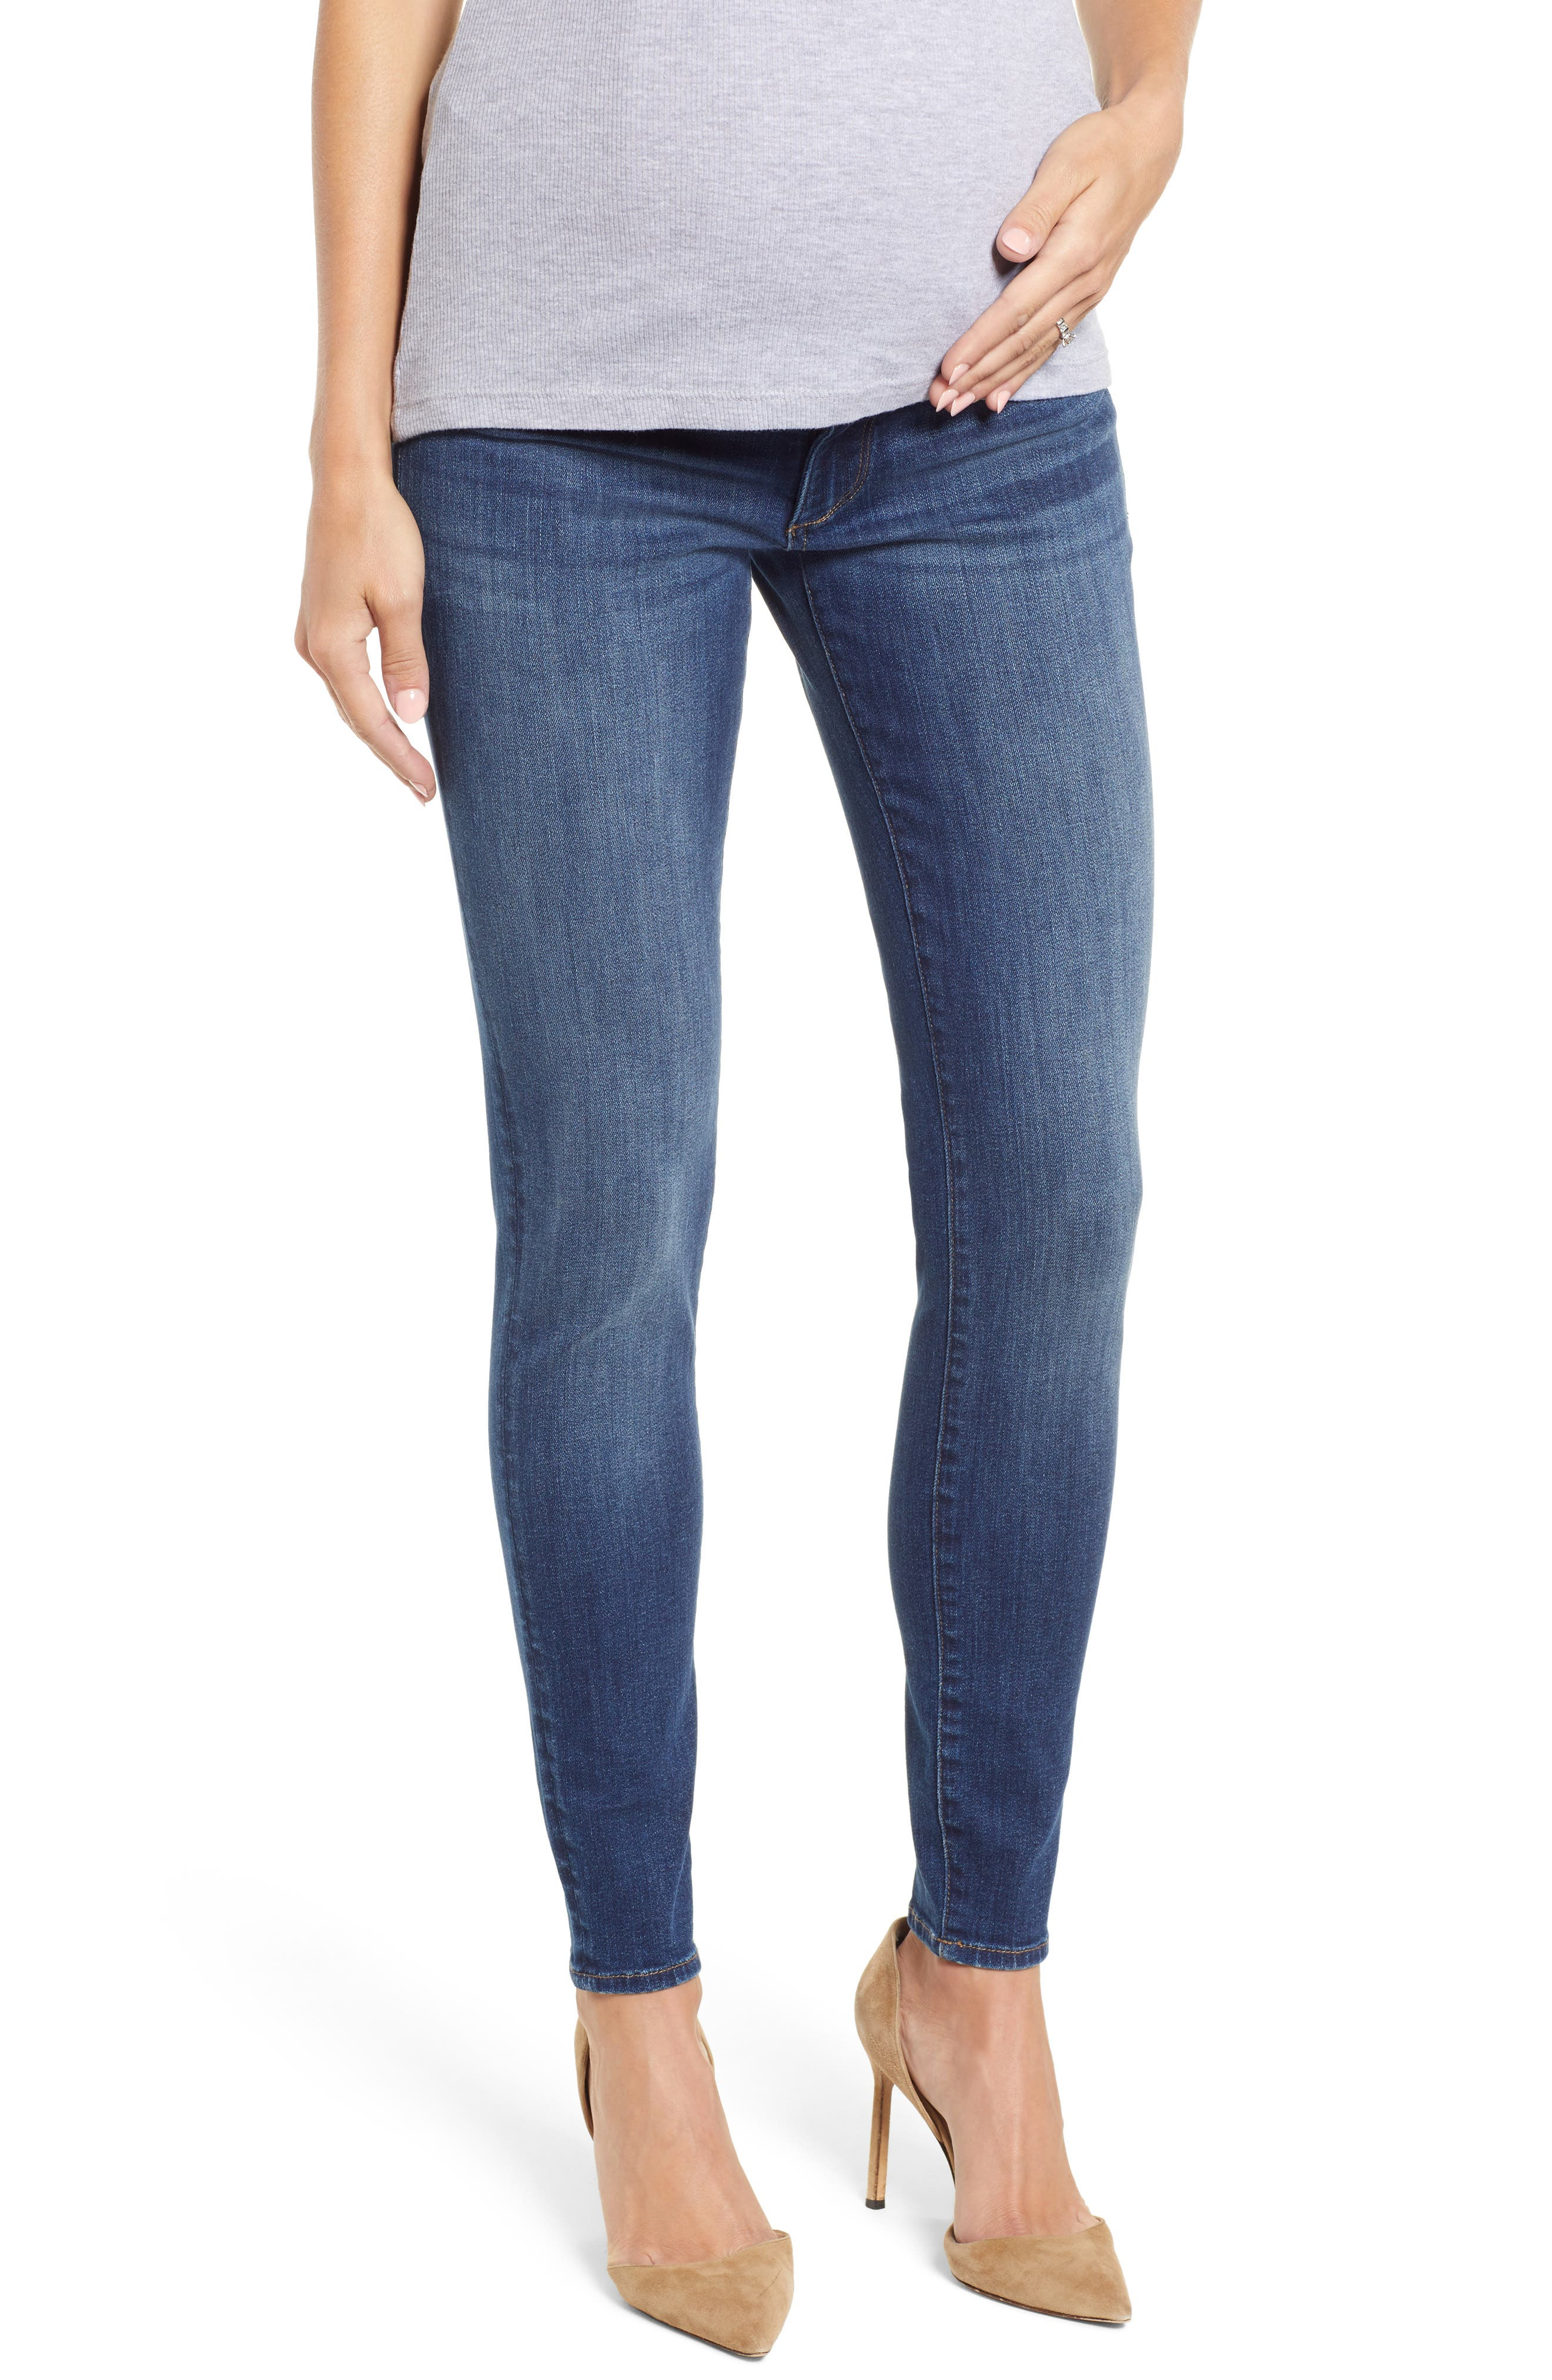 Florence Maternity Skinny Jeans,                             Main thumbnail 1, color,                             001